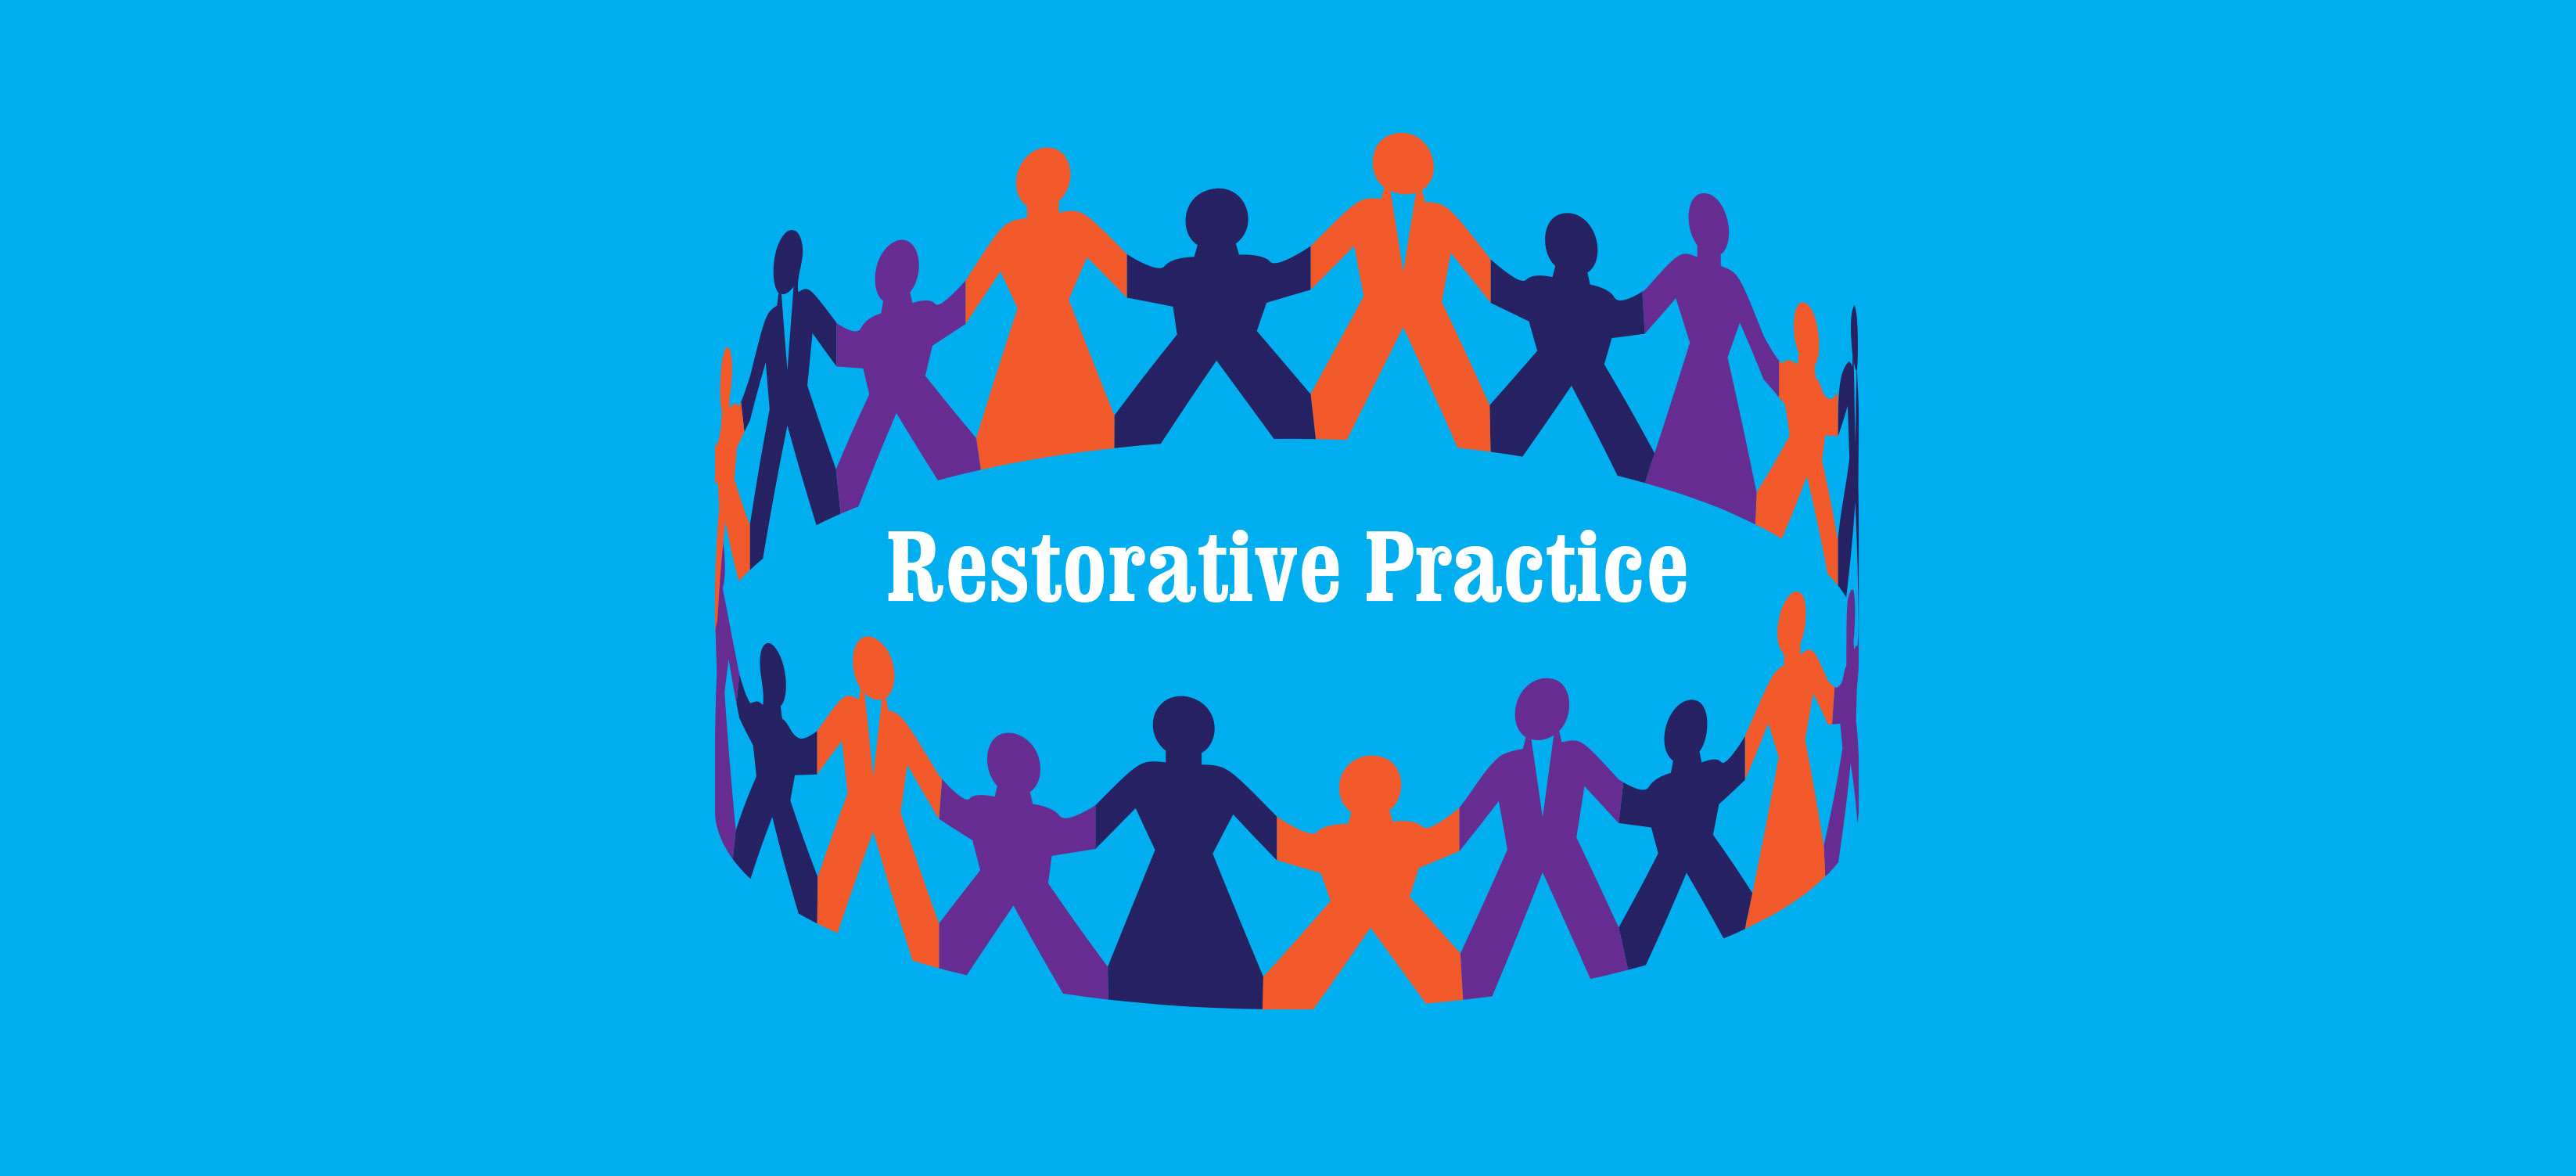 Go to Restorative Practice